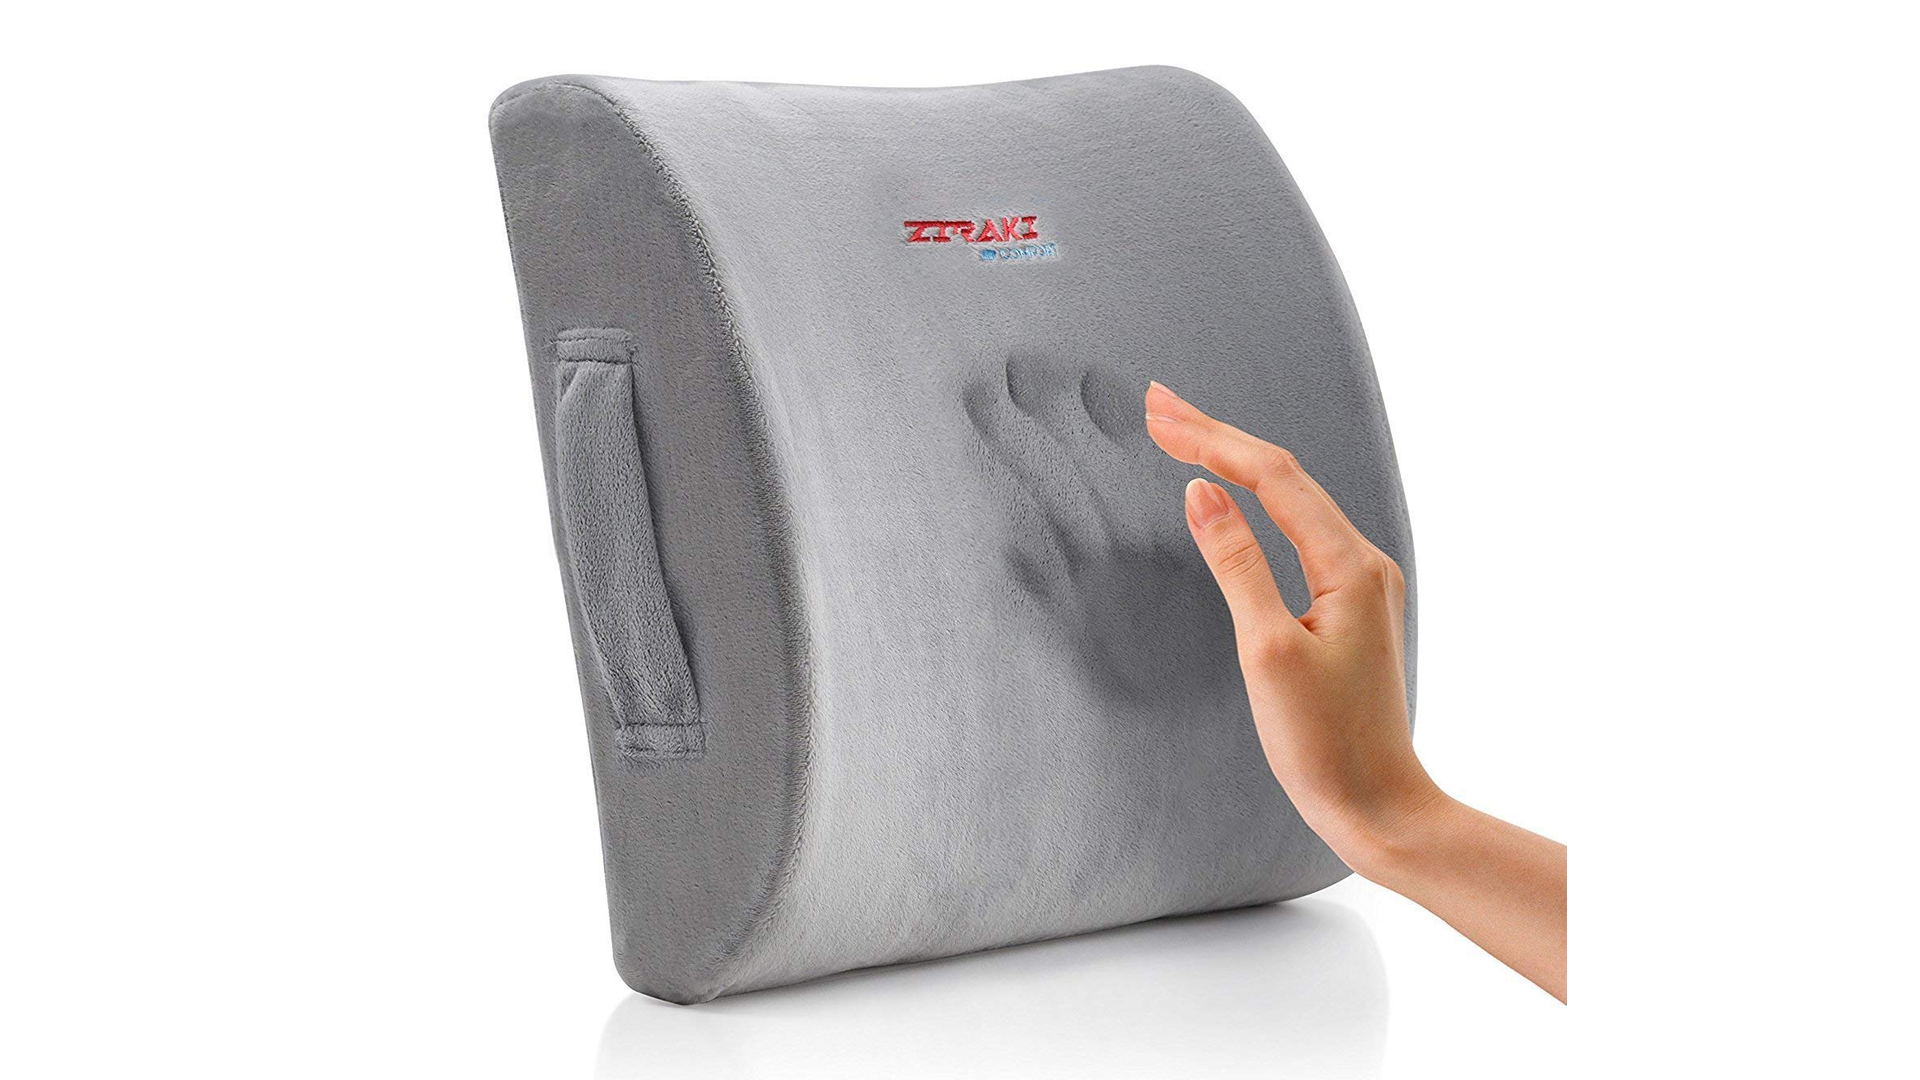 The ZIRAKI lumbar Xpillow